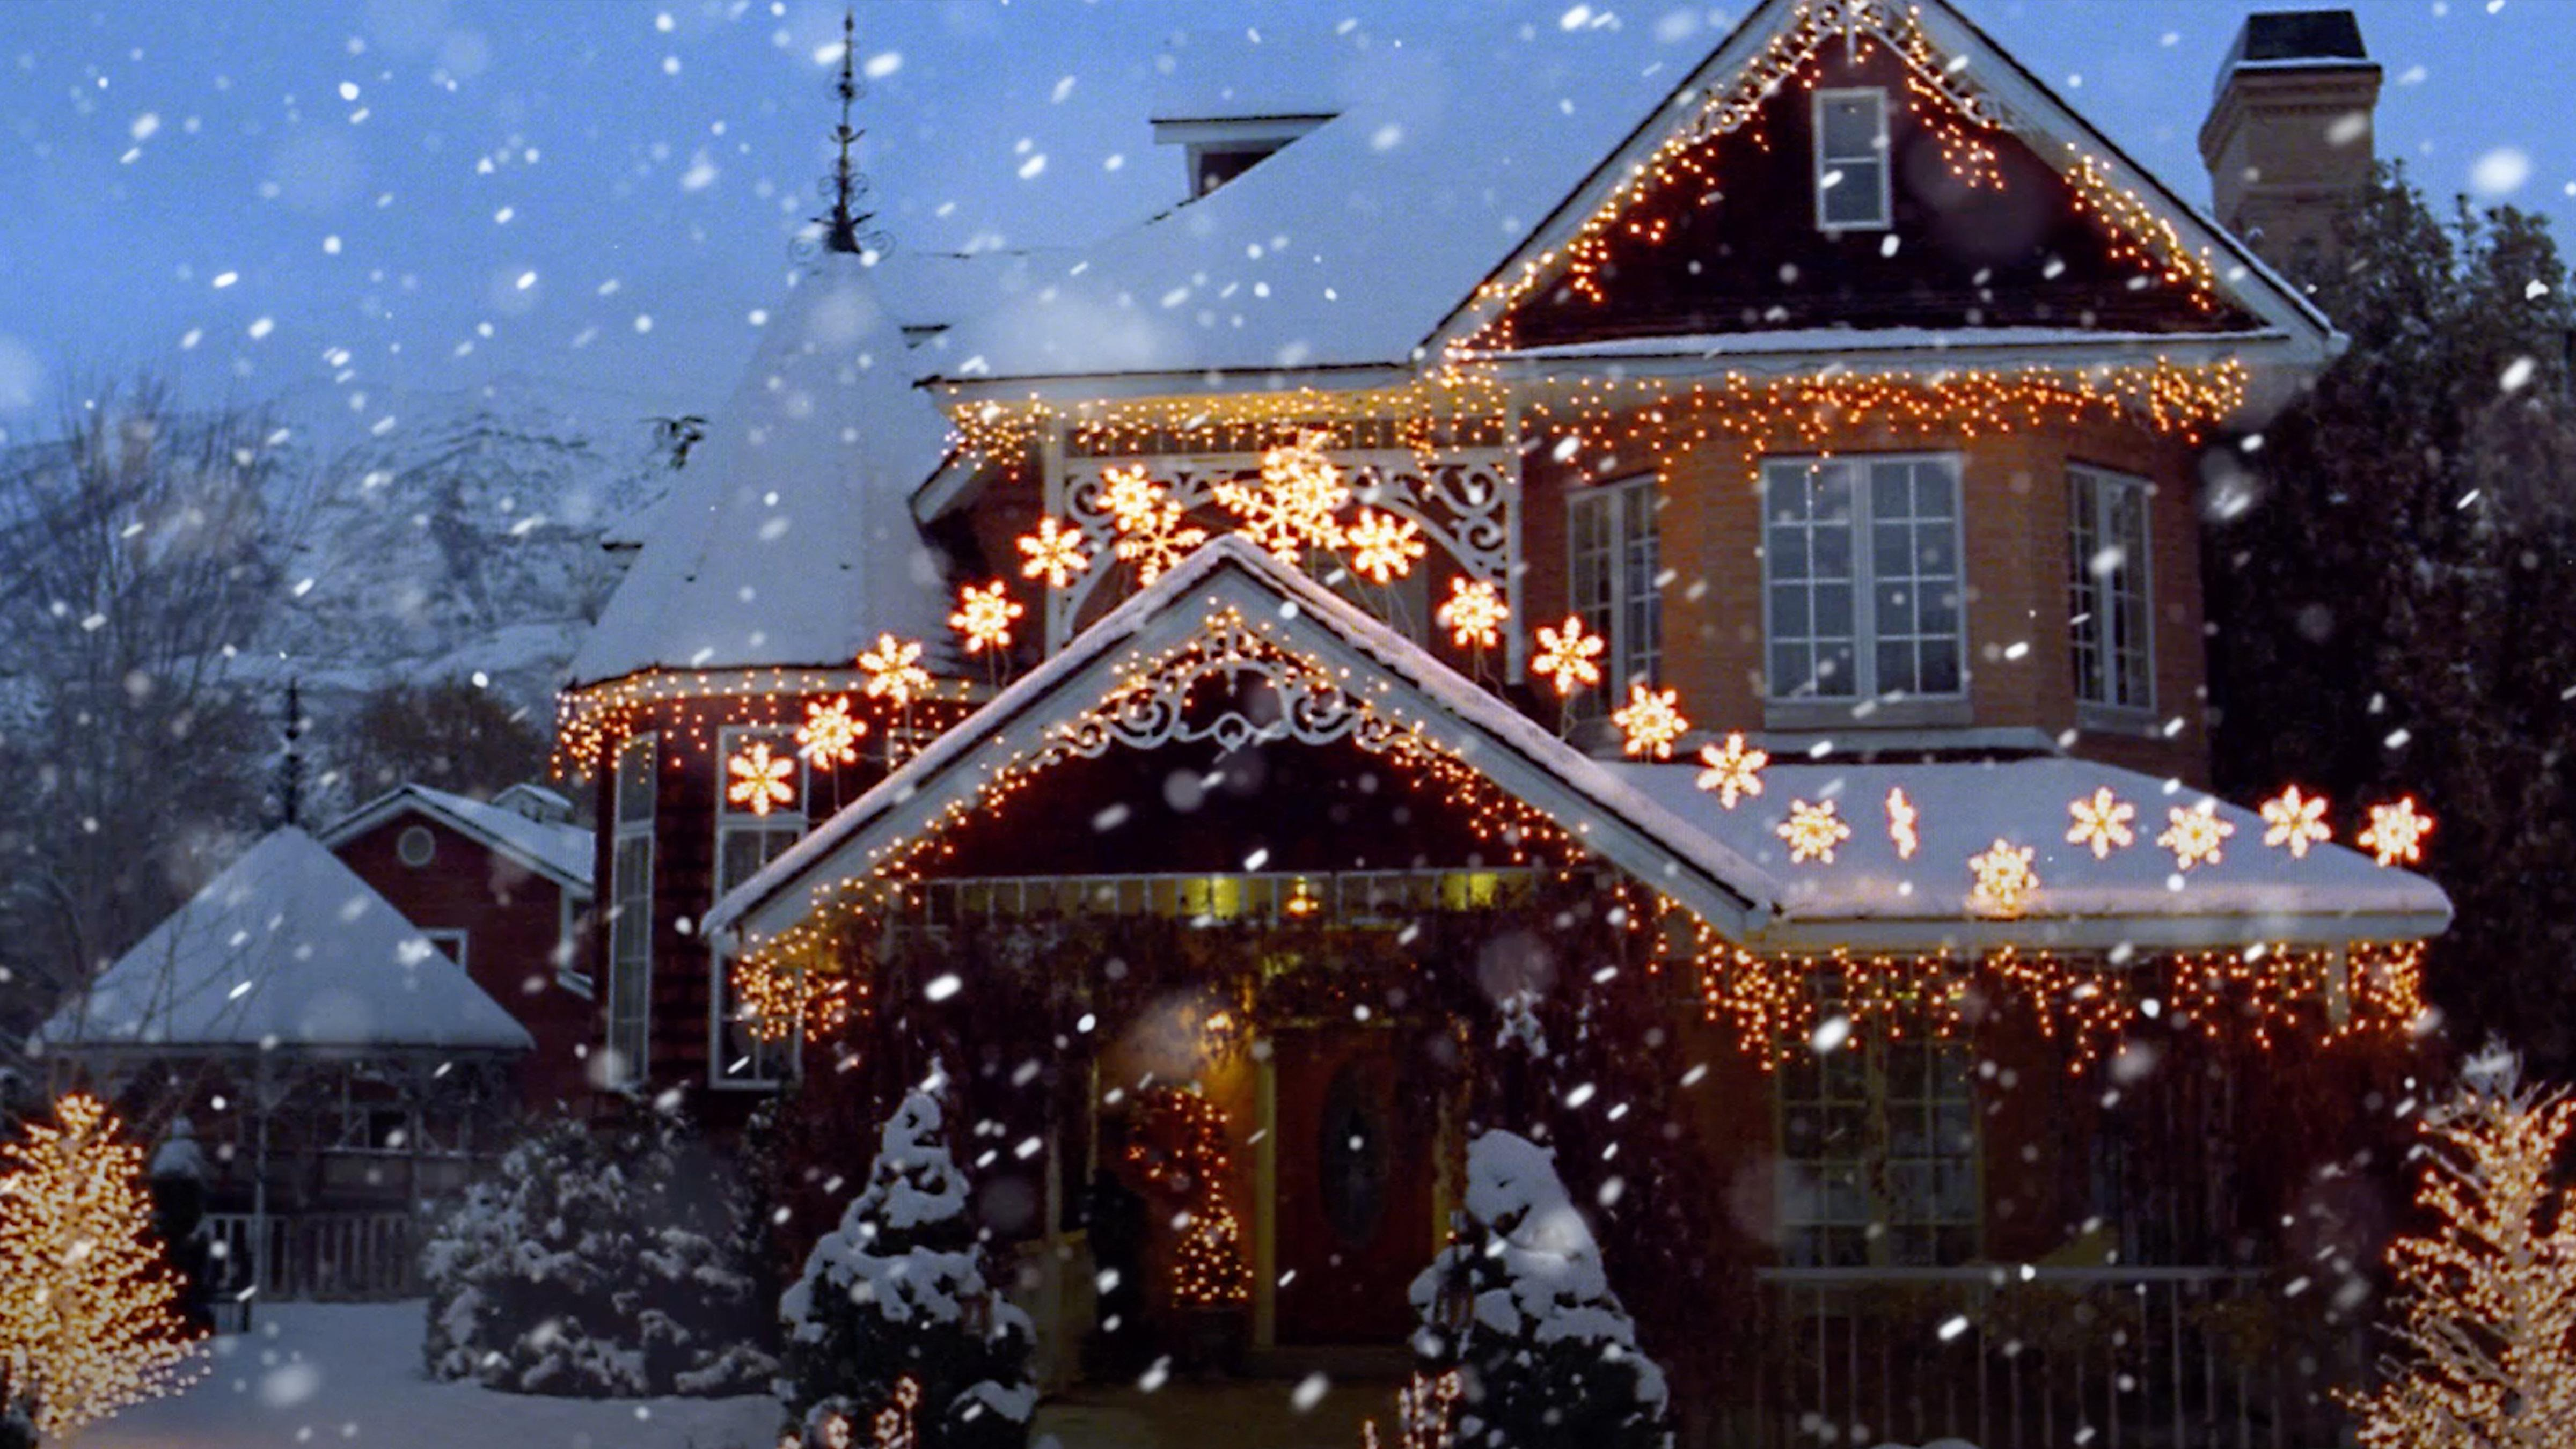 Putting Your Holiday Decorations Up Early Could Make You Happier